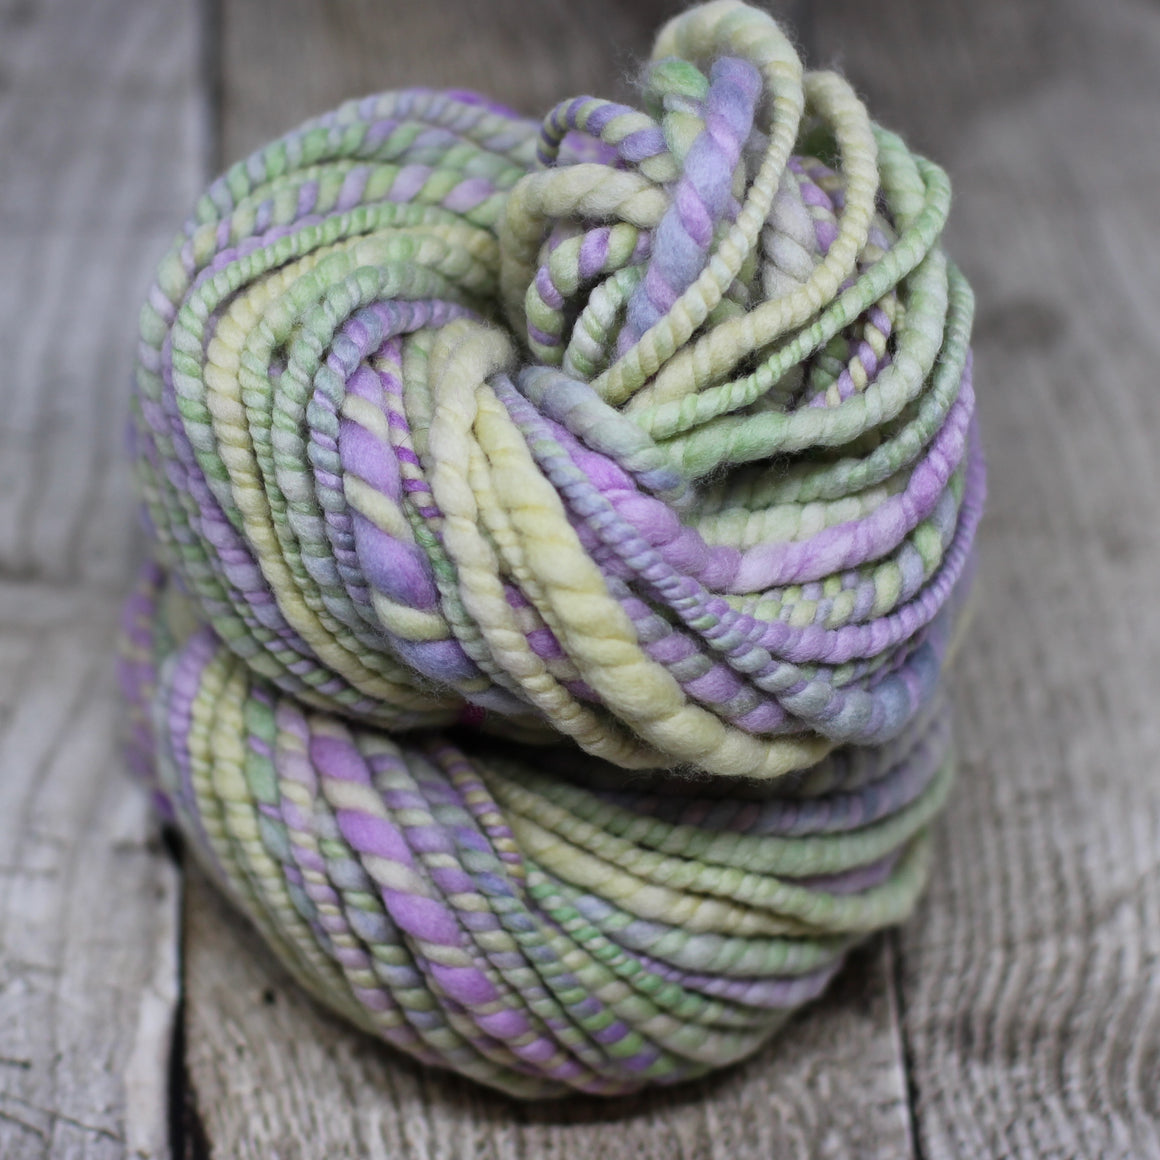 Handspun Yarn - No. 323